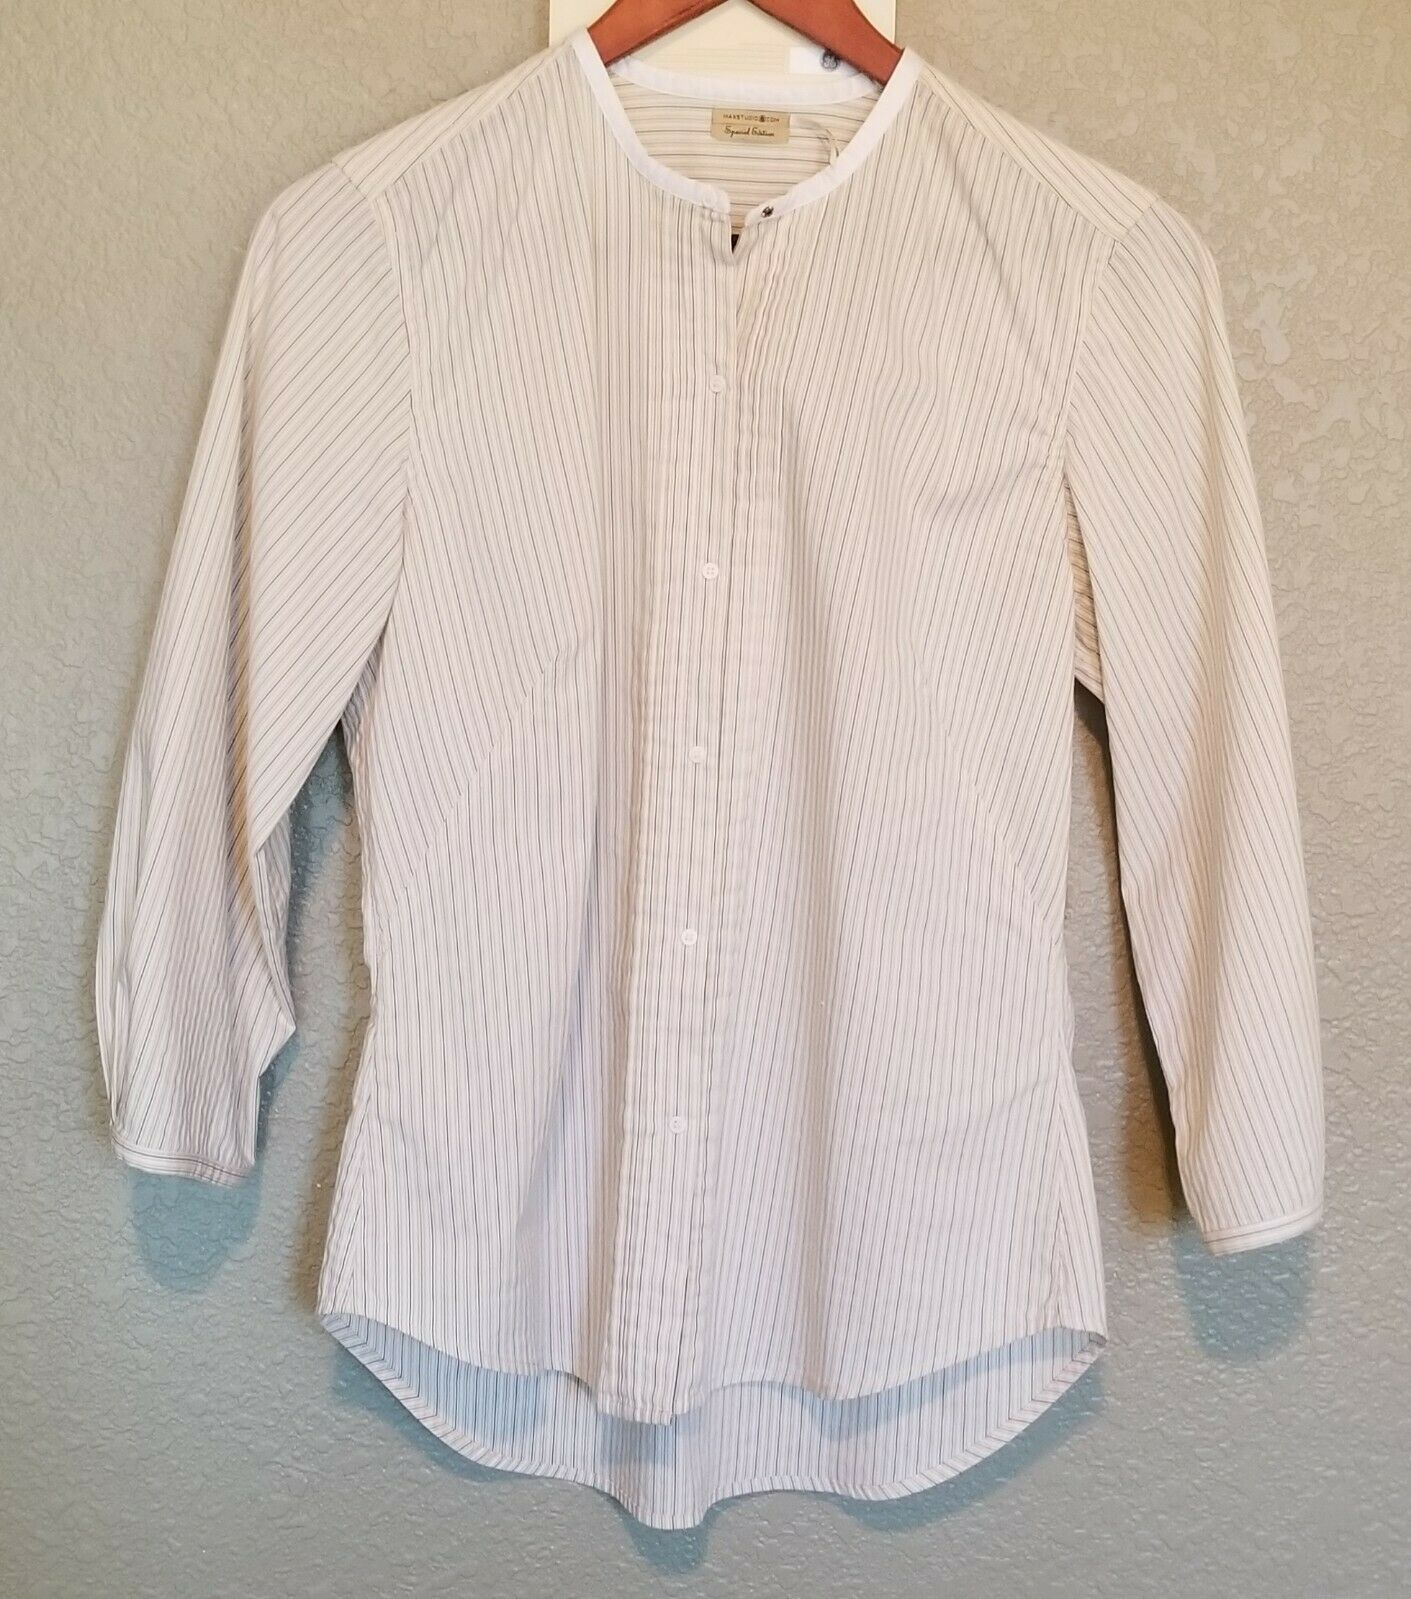 Special Edition Max Studio Womens Striped Long Sleeve Snap Button Shirt S